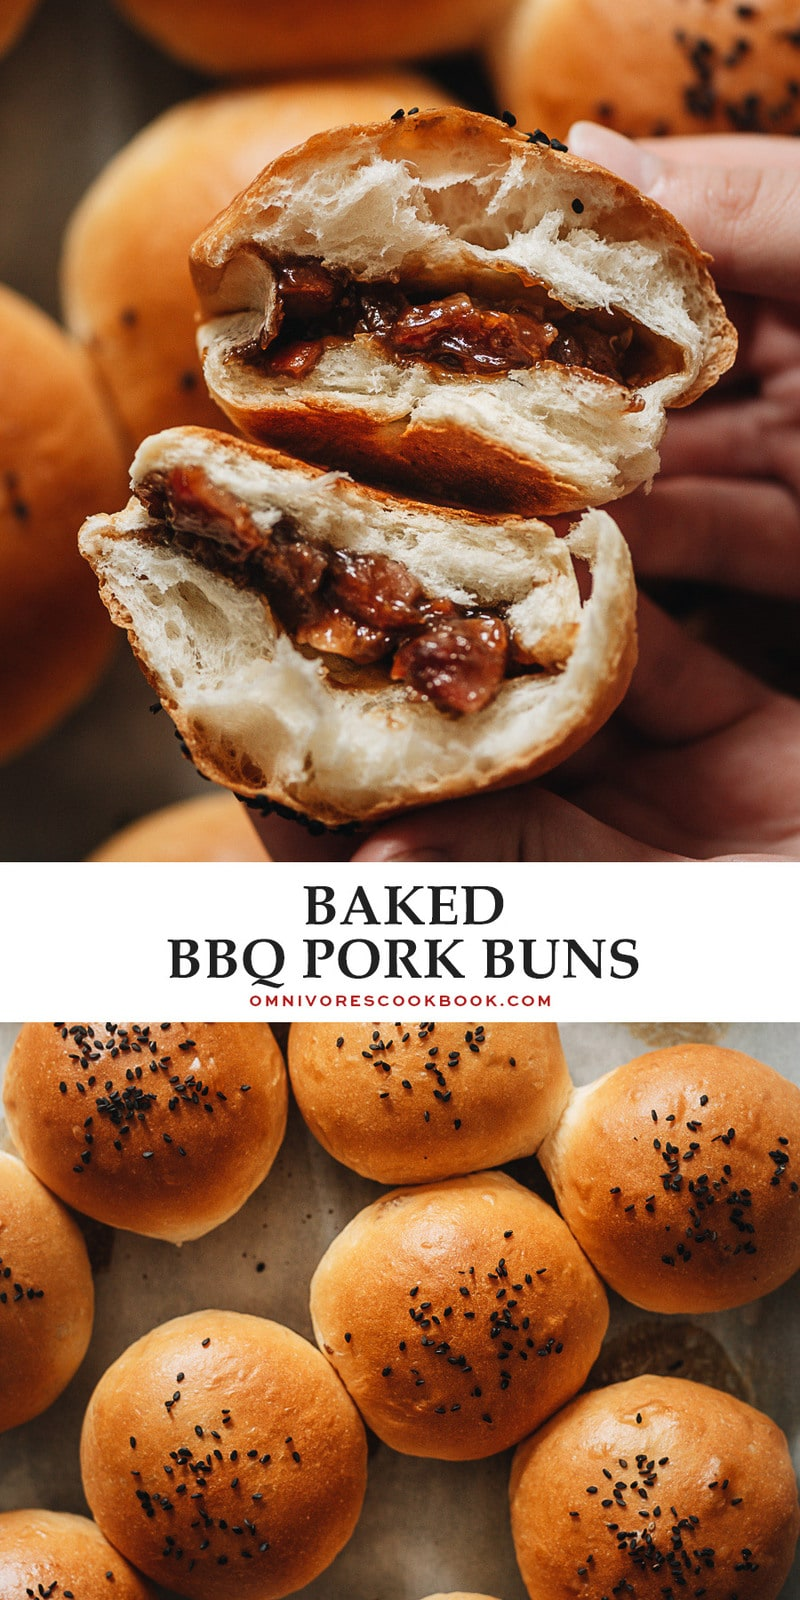 Bring authentic dim sum to your home with baked BBQ pork buns just like your favorite Chinese restaurant!